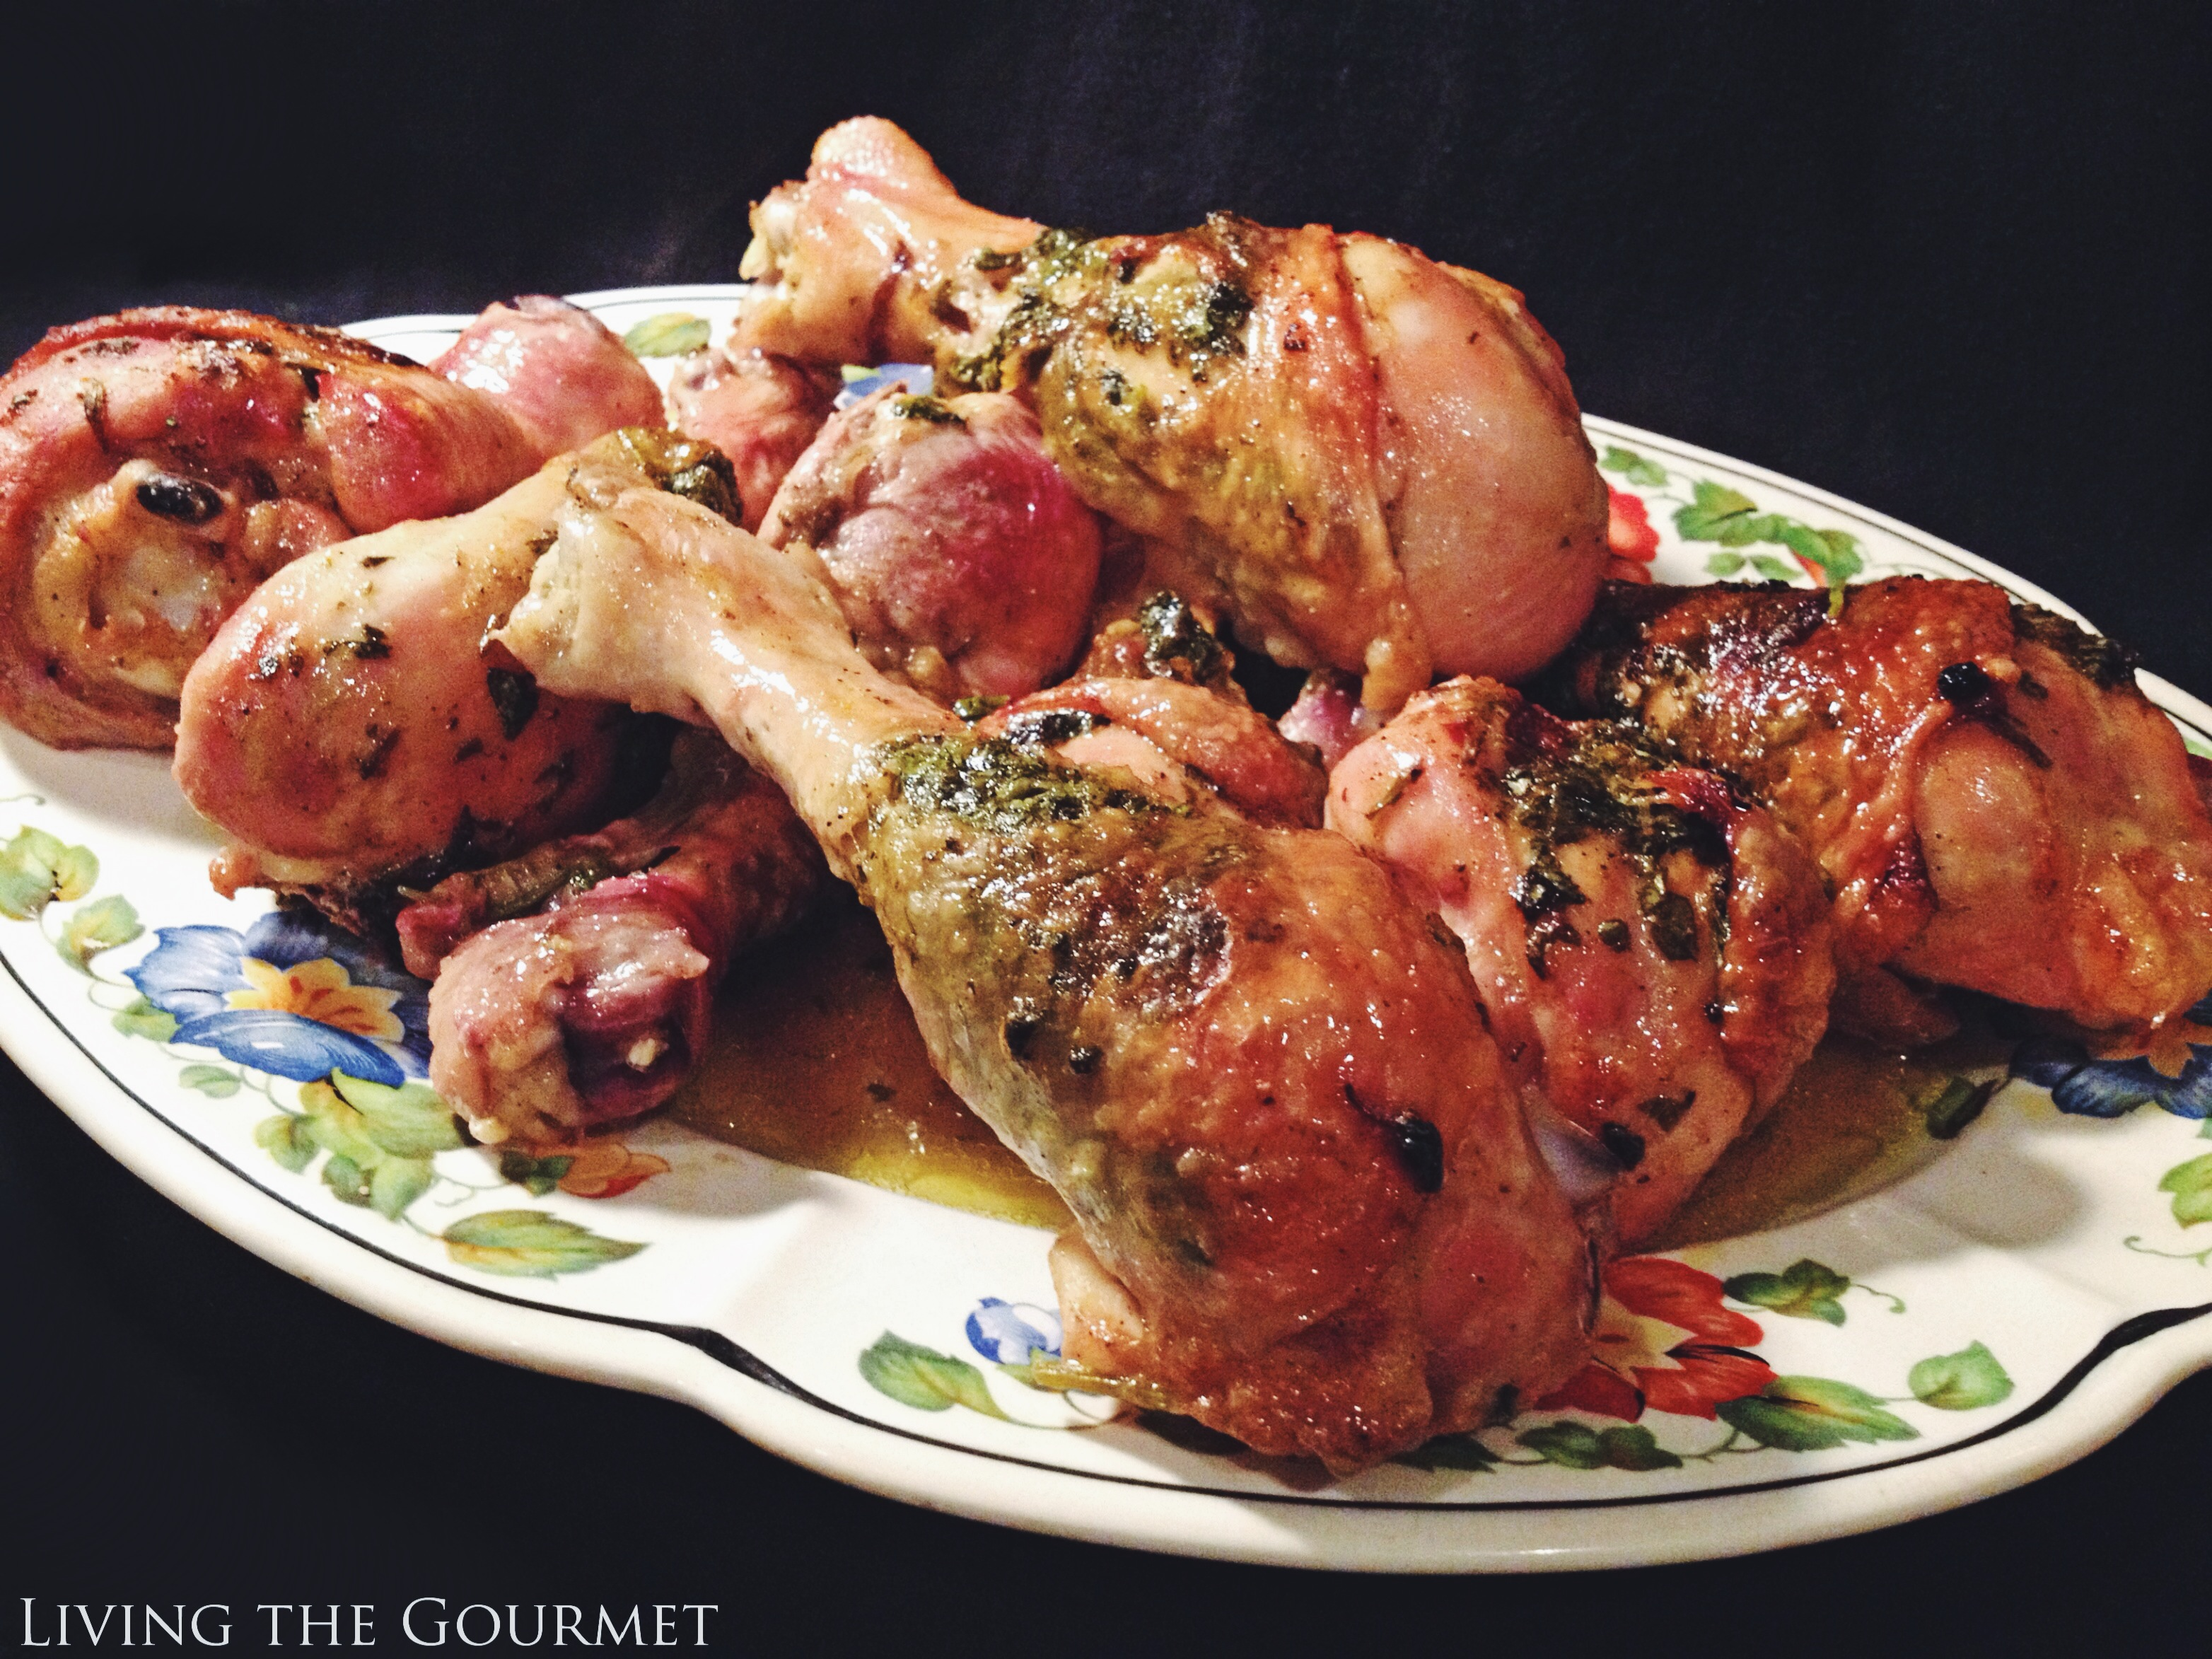 Living the Gourmet: Stuffed Chicken Legs